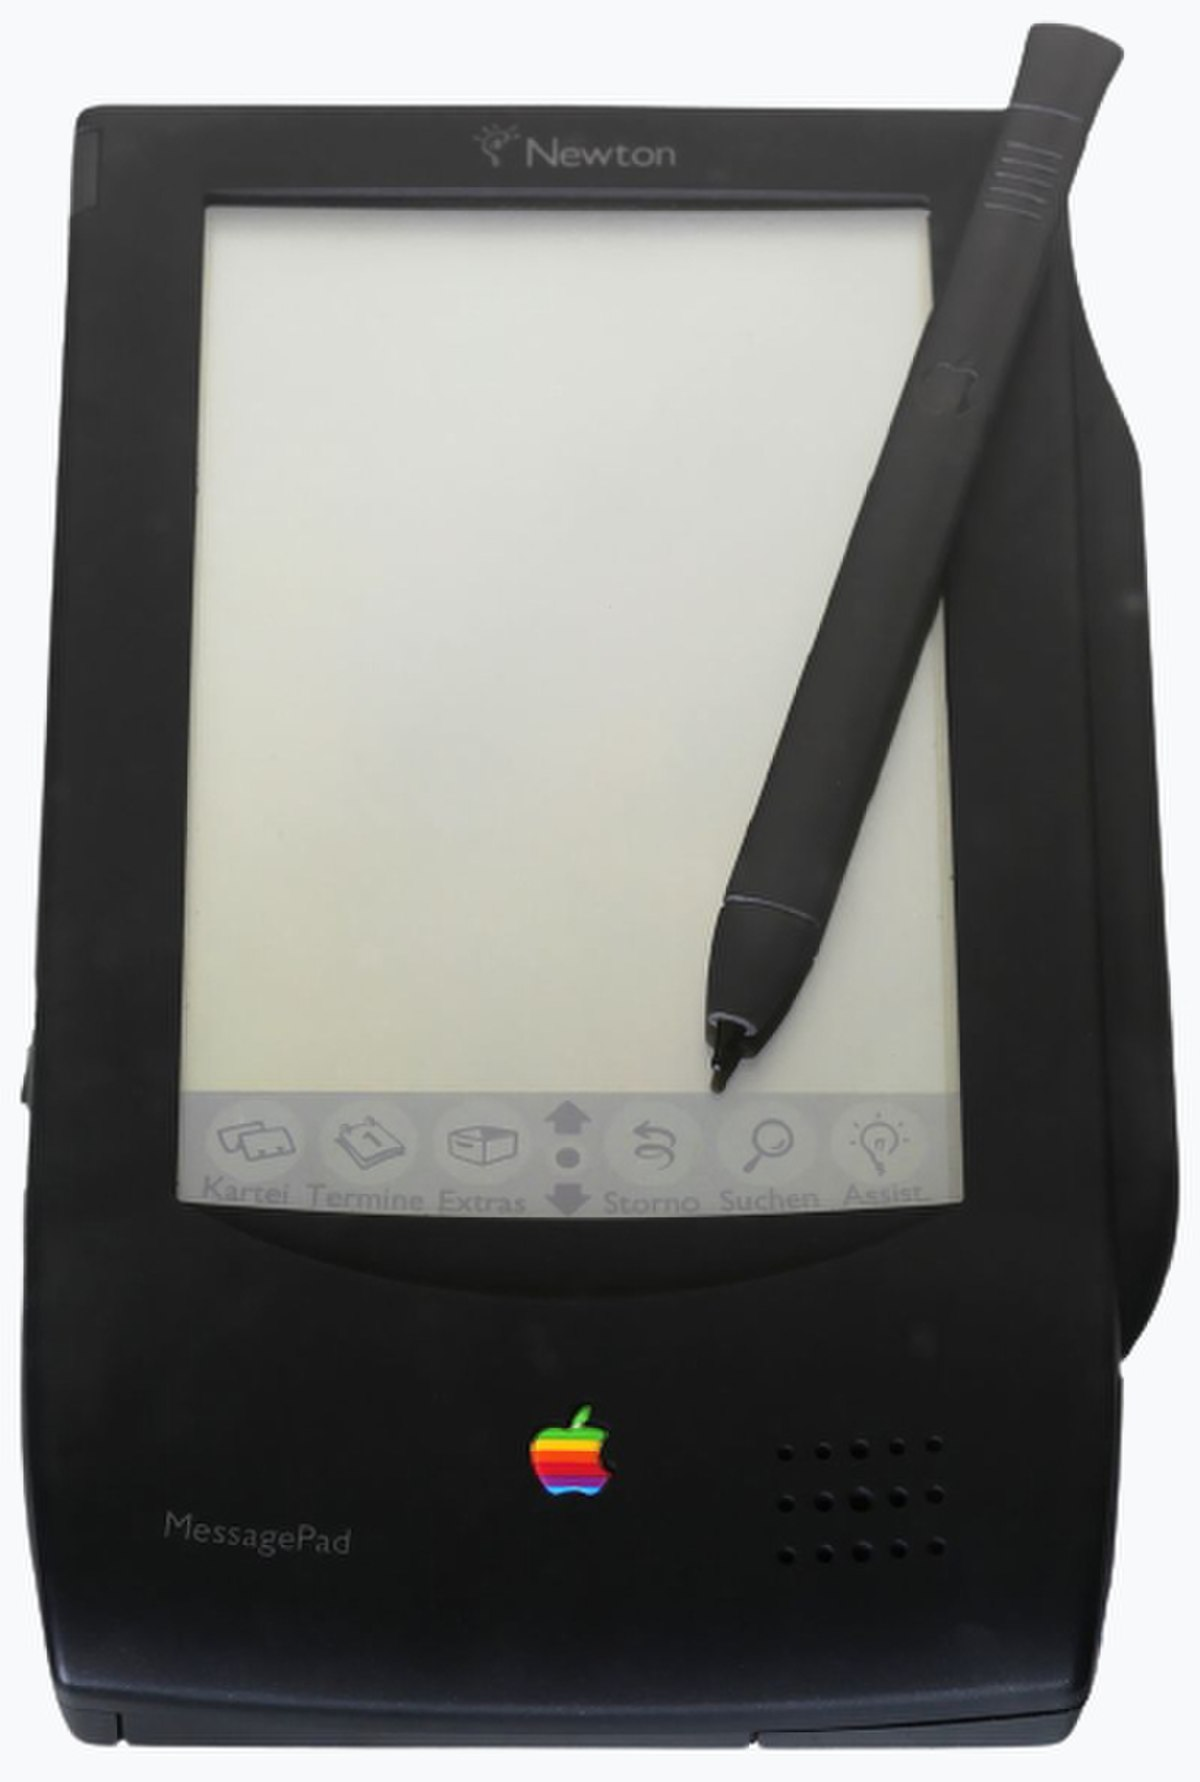 MessagePad - Wikipedia